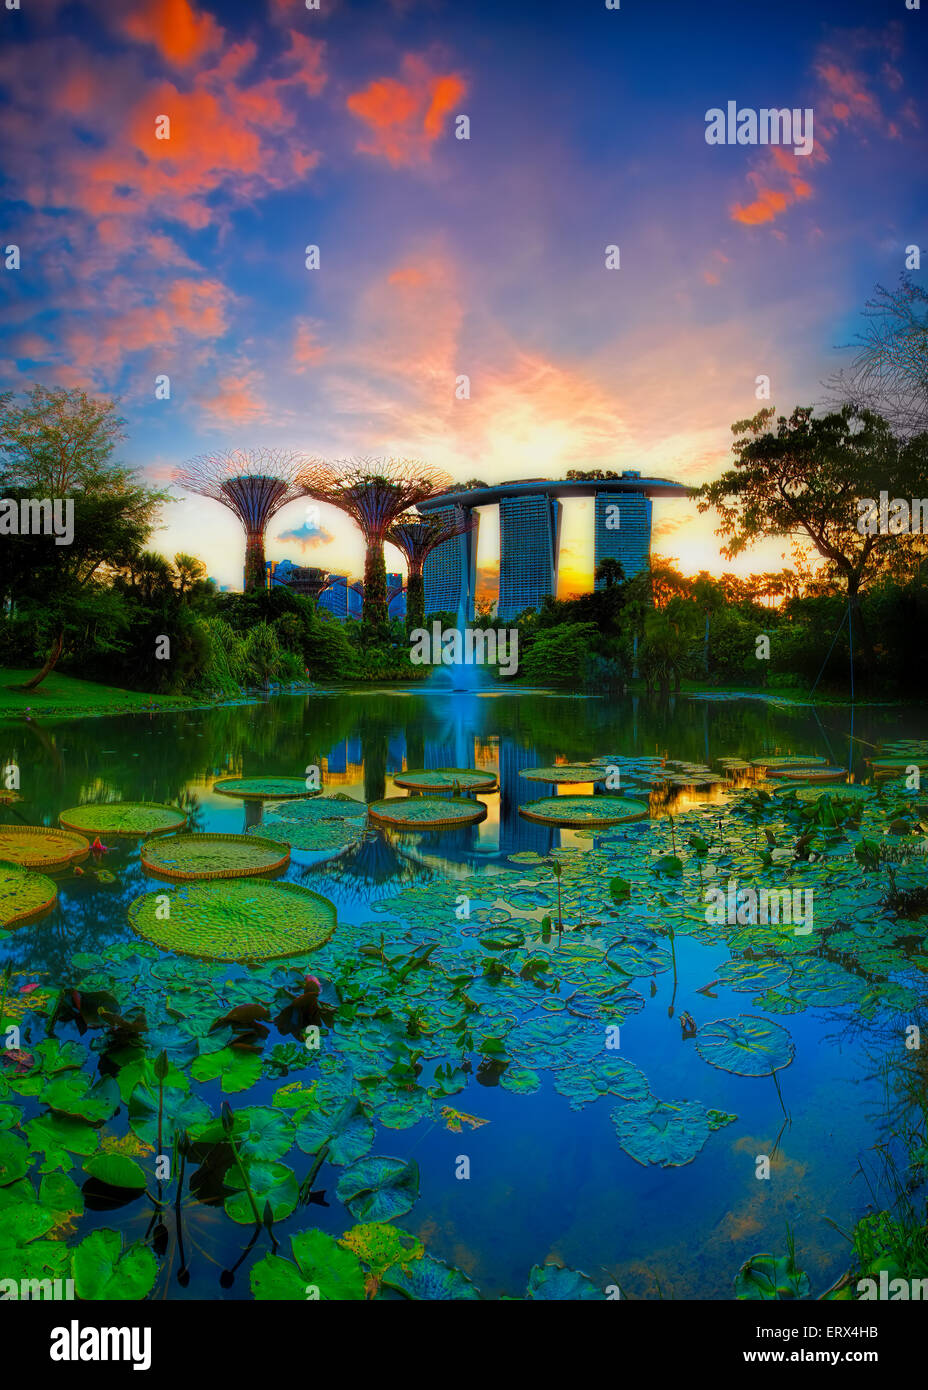 SINGAPORE-JUN 07: Evening view of Water Lily pond, and Marina Bay Sands at Gardens by the Bay on Jun 07, 2015 in - Stock Image